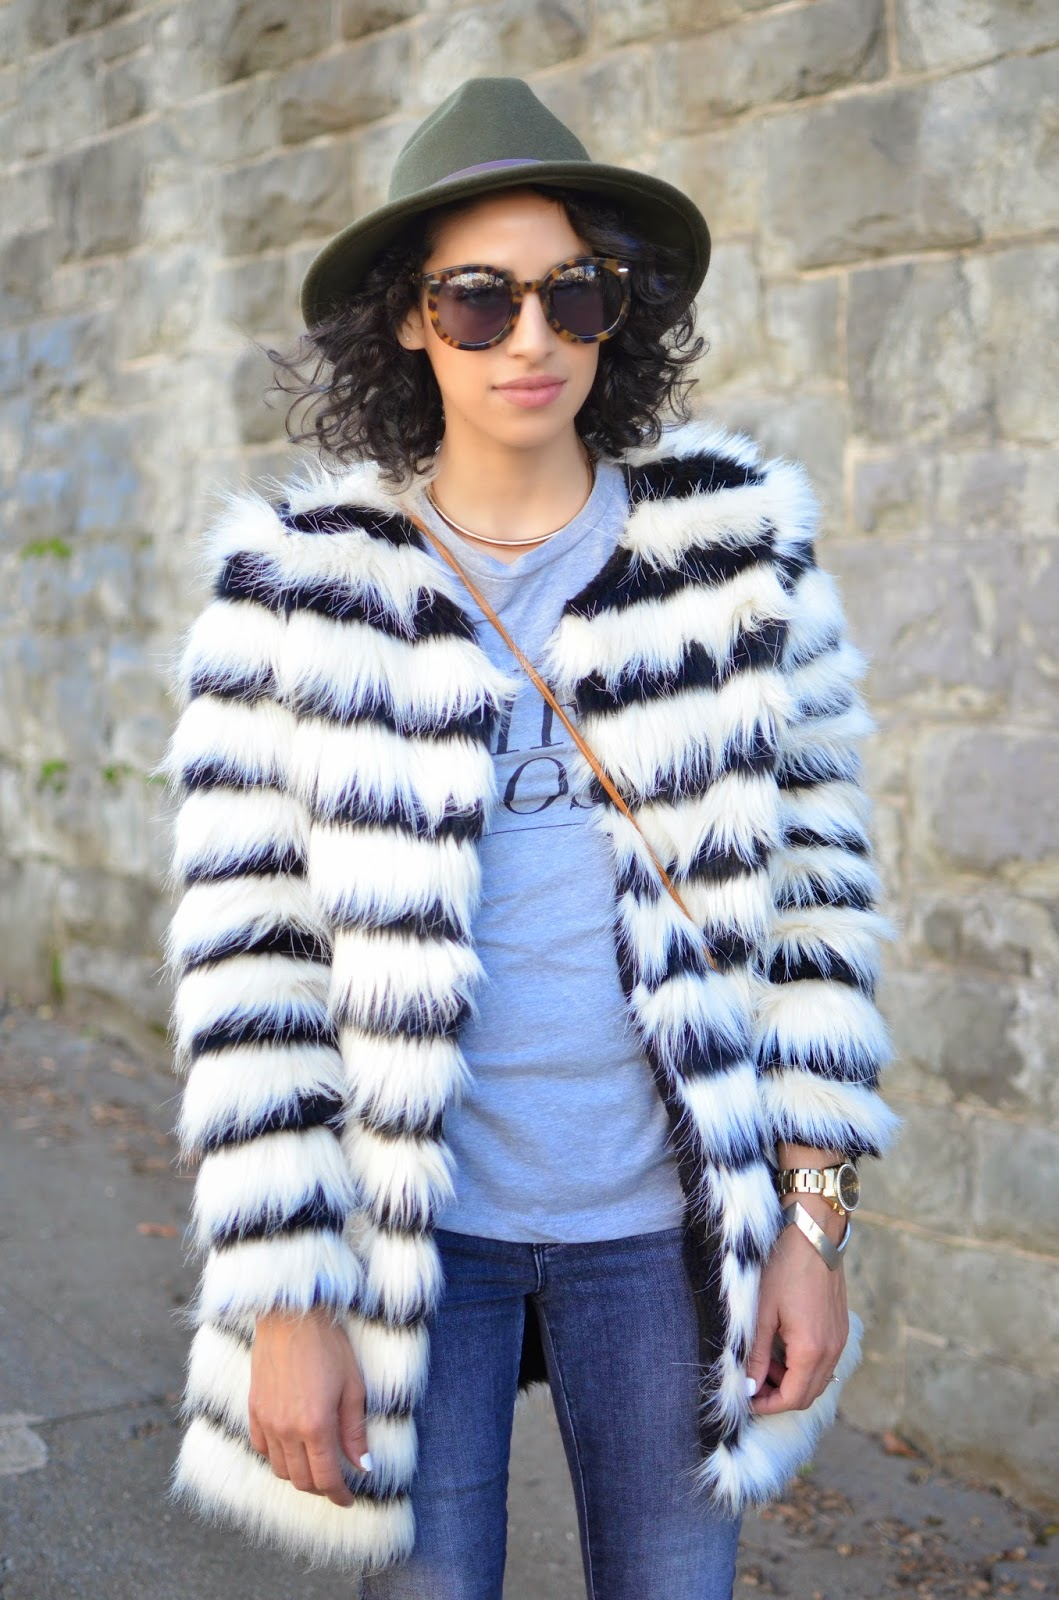 Karen Walker Super sunglasses, J Brand denim, grey denim, skinny denim, nude pumps, how to style faux fur, how to style a fedora